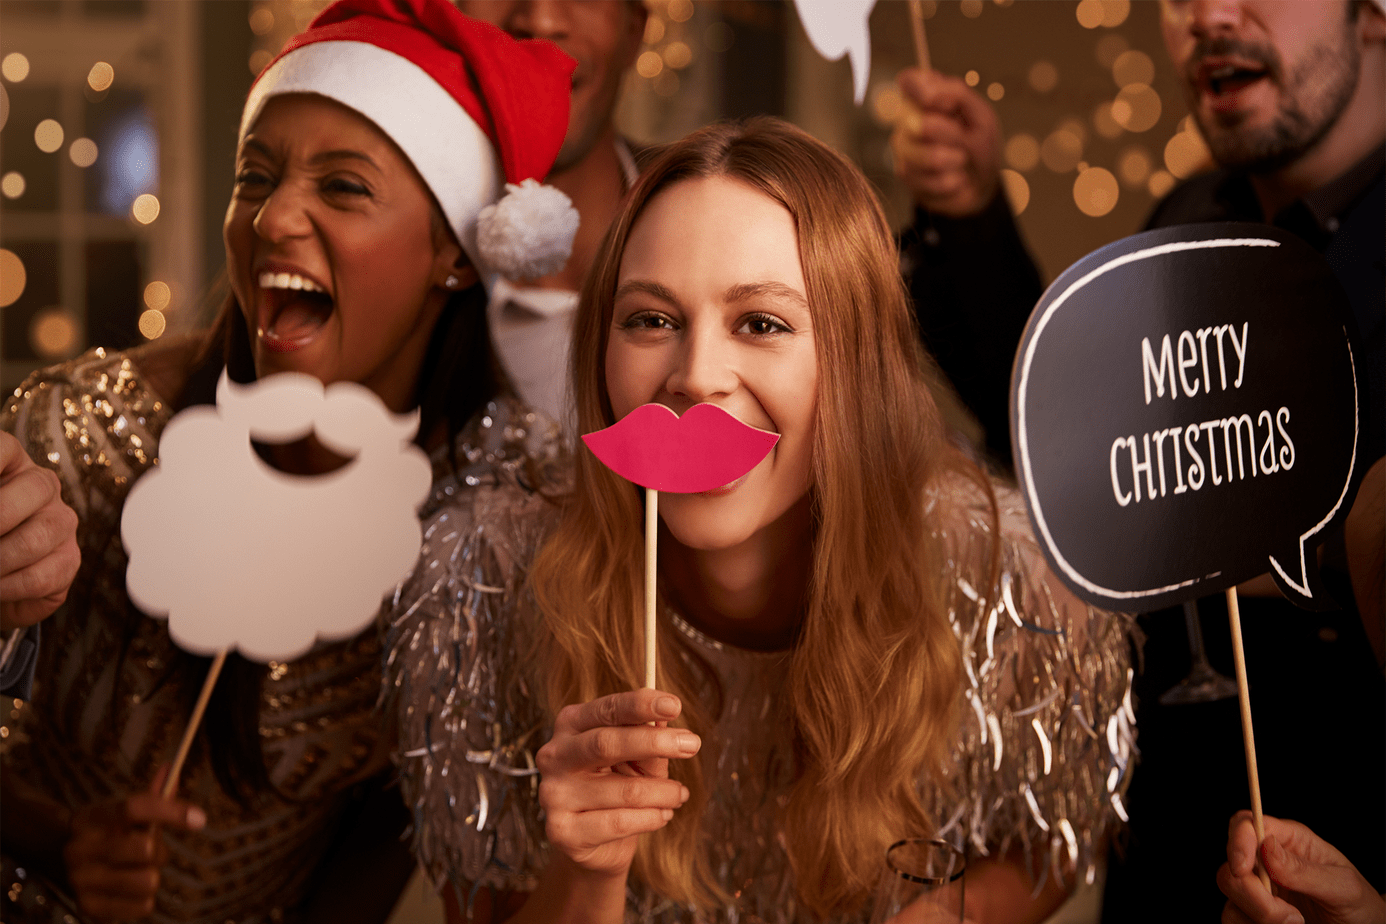 if you want to throw a christmas party on the cheap here are frugal